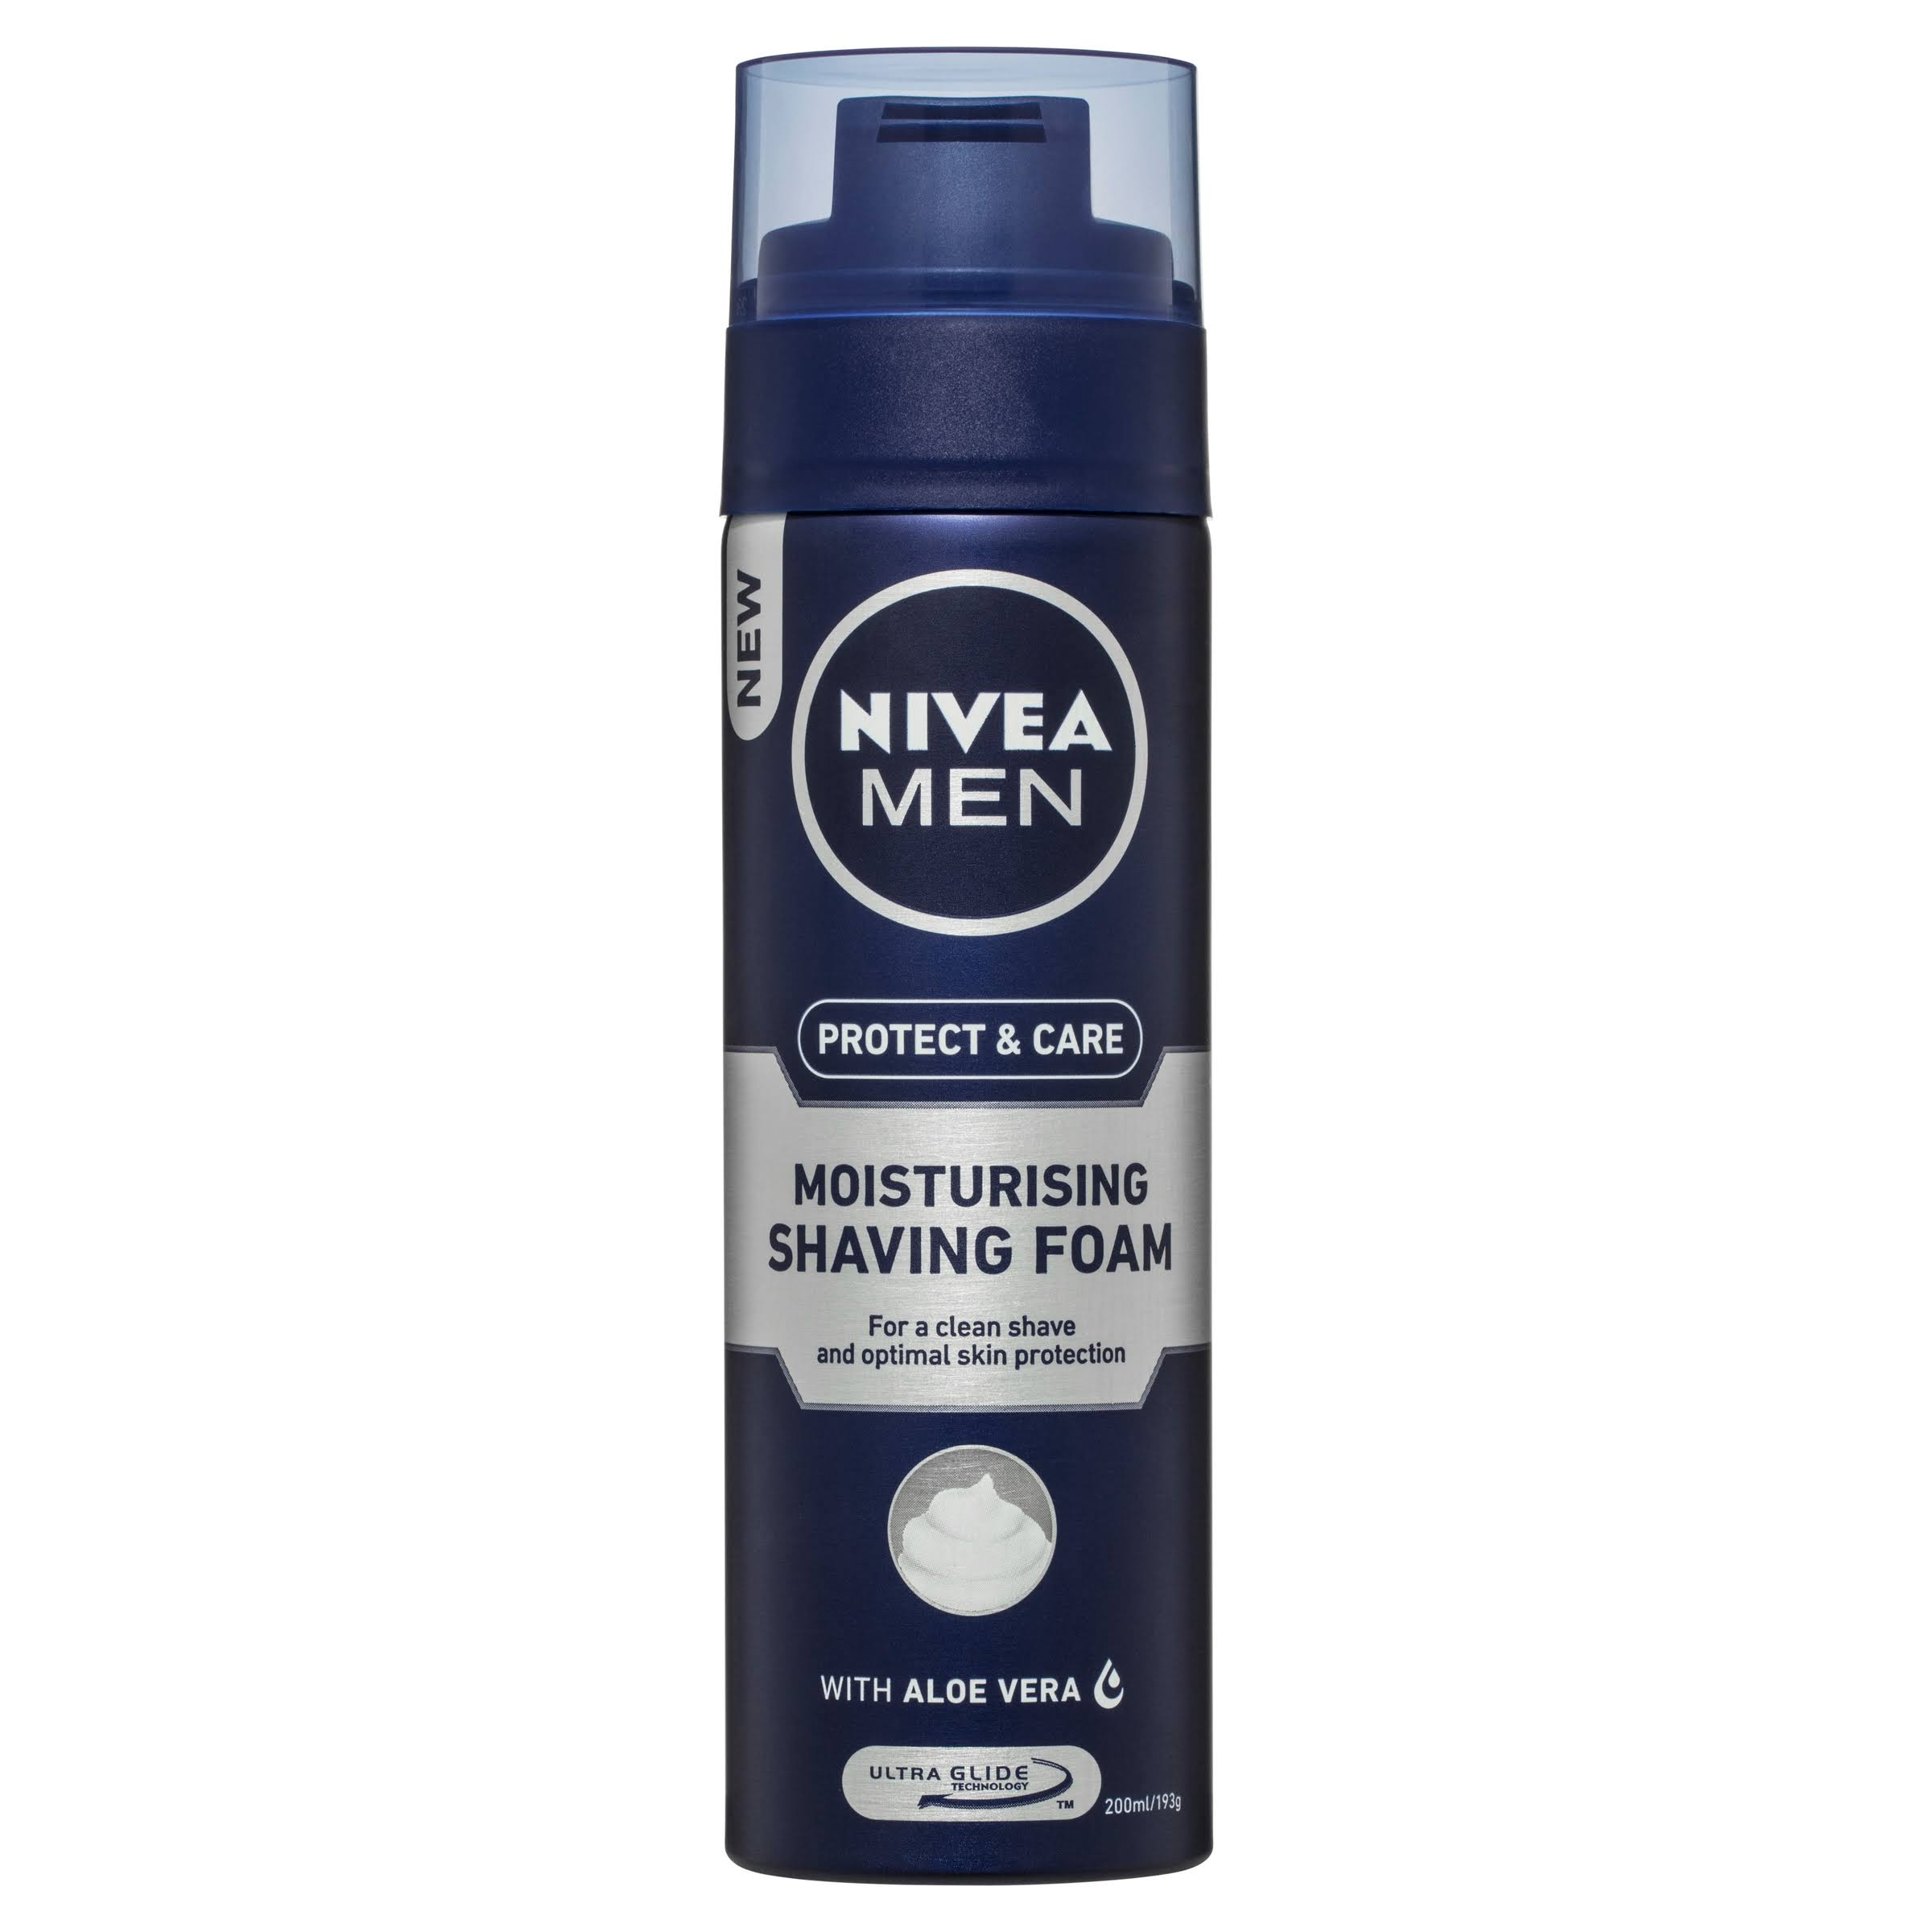 Nivea Men Protect and Care Moisturising Shaving Foam - 200ml